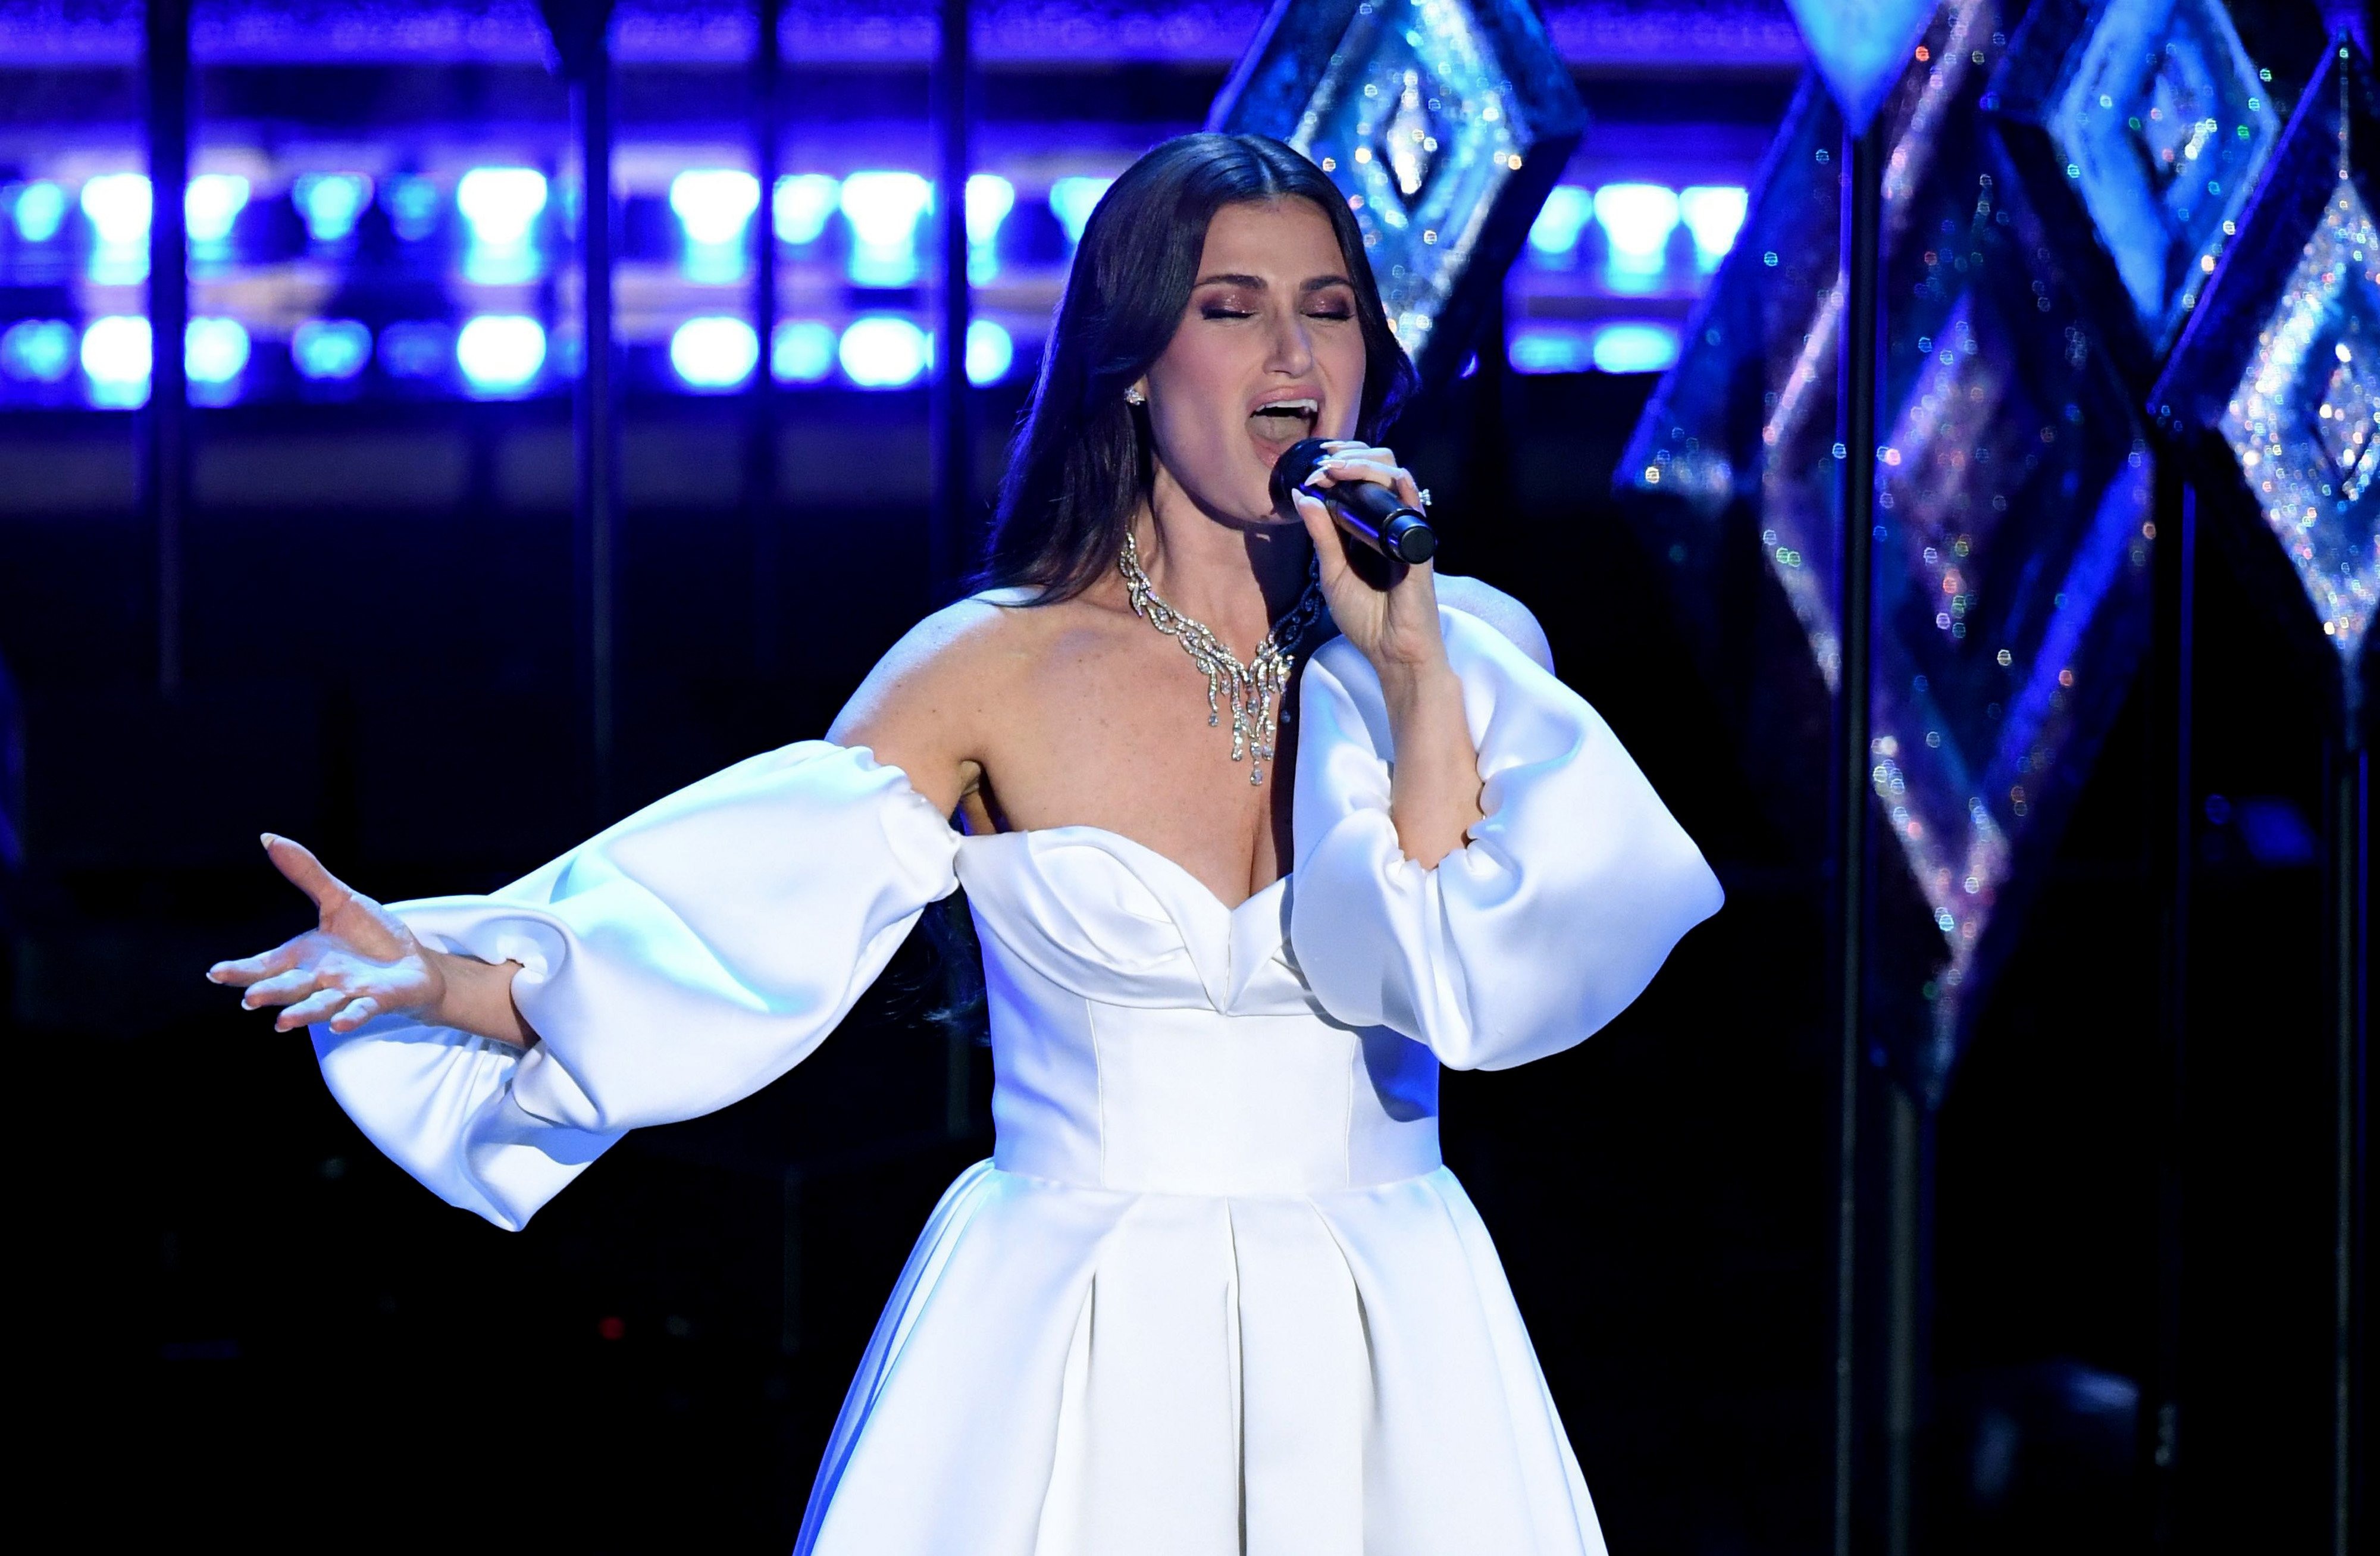 Idina Menzel performs at the 92nd Annual Academy Awards on February 09, 2020   Source: Getty Images